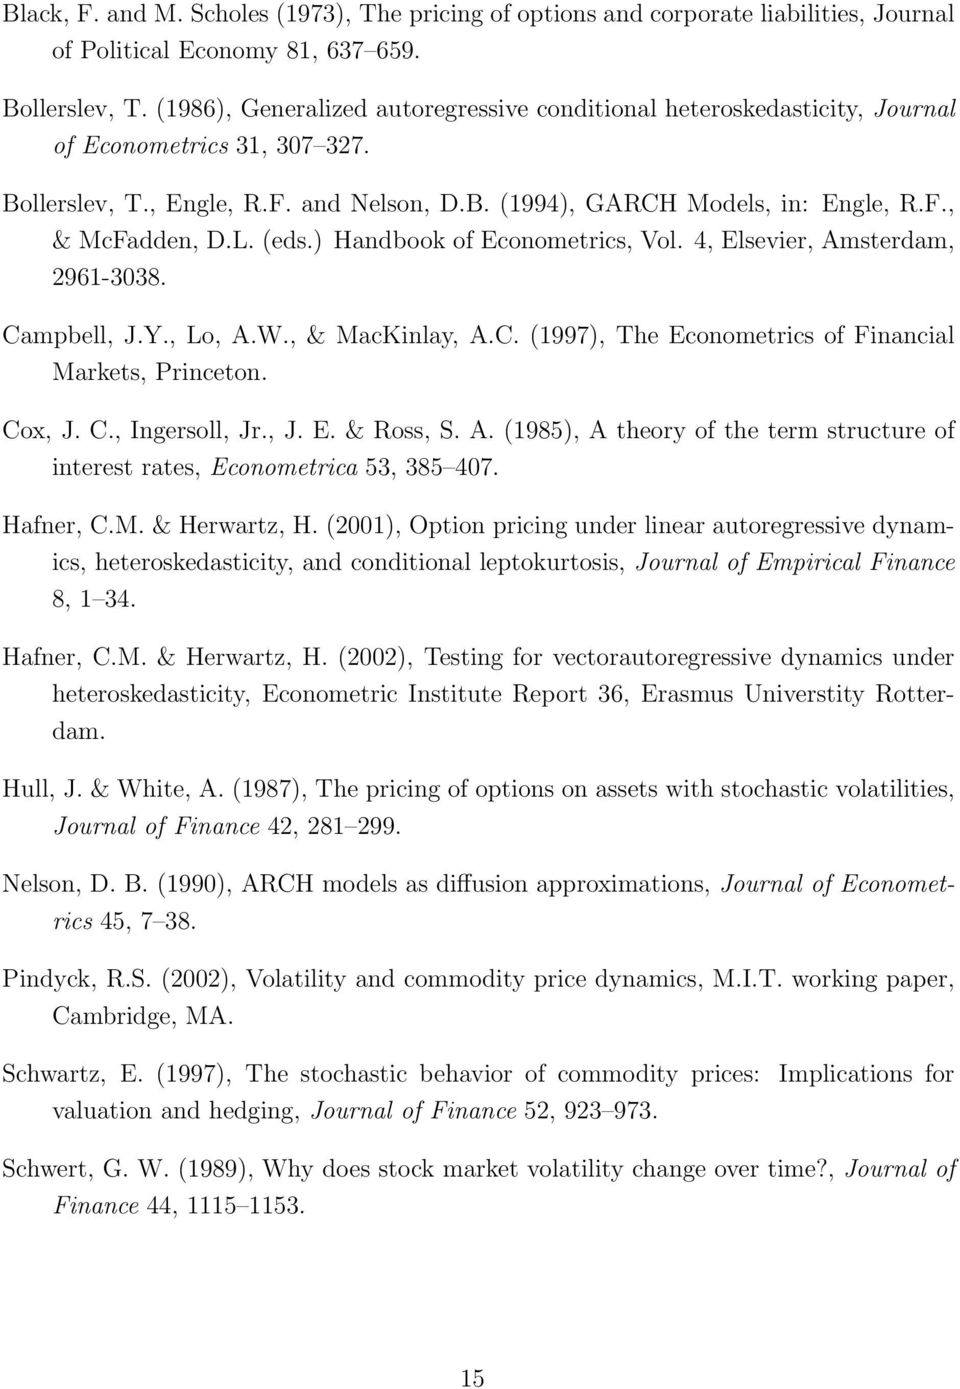 L. (eds.) Handbook of Econometrics, Vol. 4, Elsevier, Amsterdam, 2961-3038. Campbell, J.Y., Lo, A.W., & MacKinlay, A.C. (1997), The Econometrics of Financial Markets, Princeton. Cox, J. C., Ingersoll, Jr.